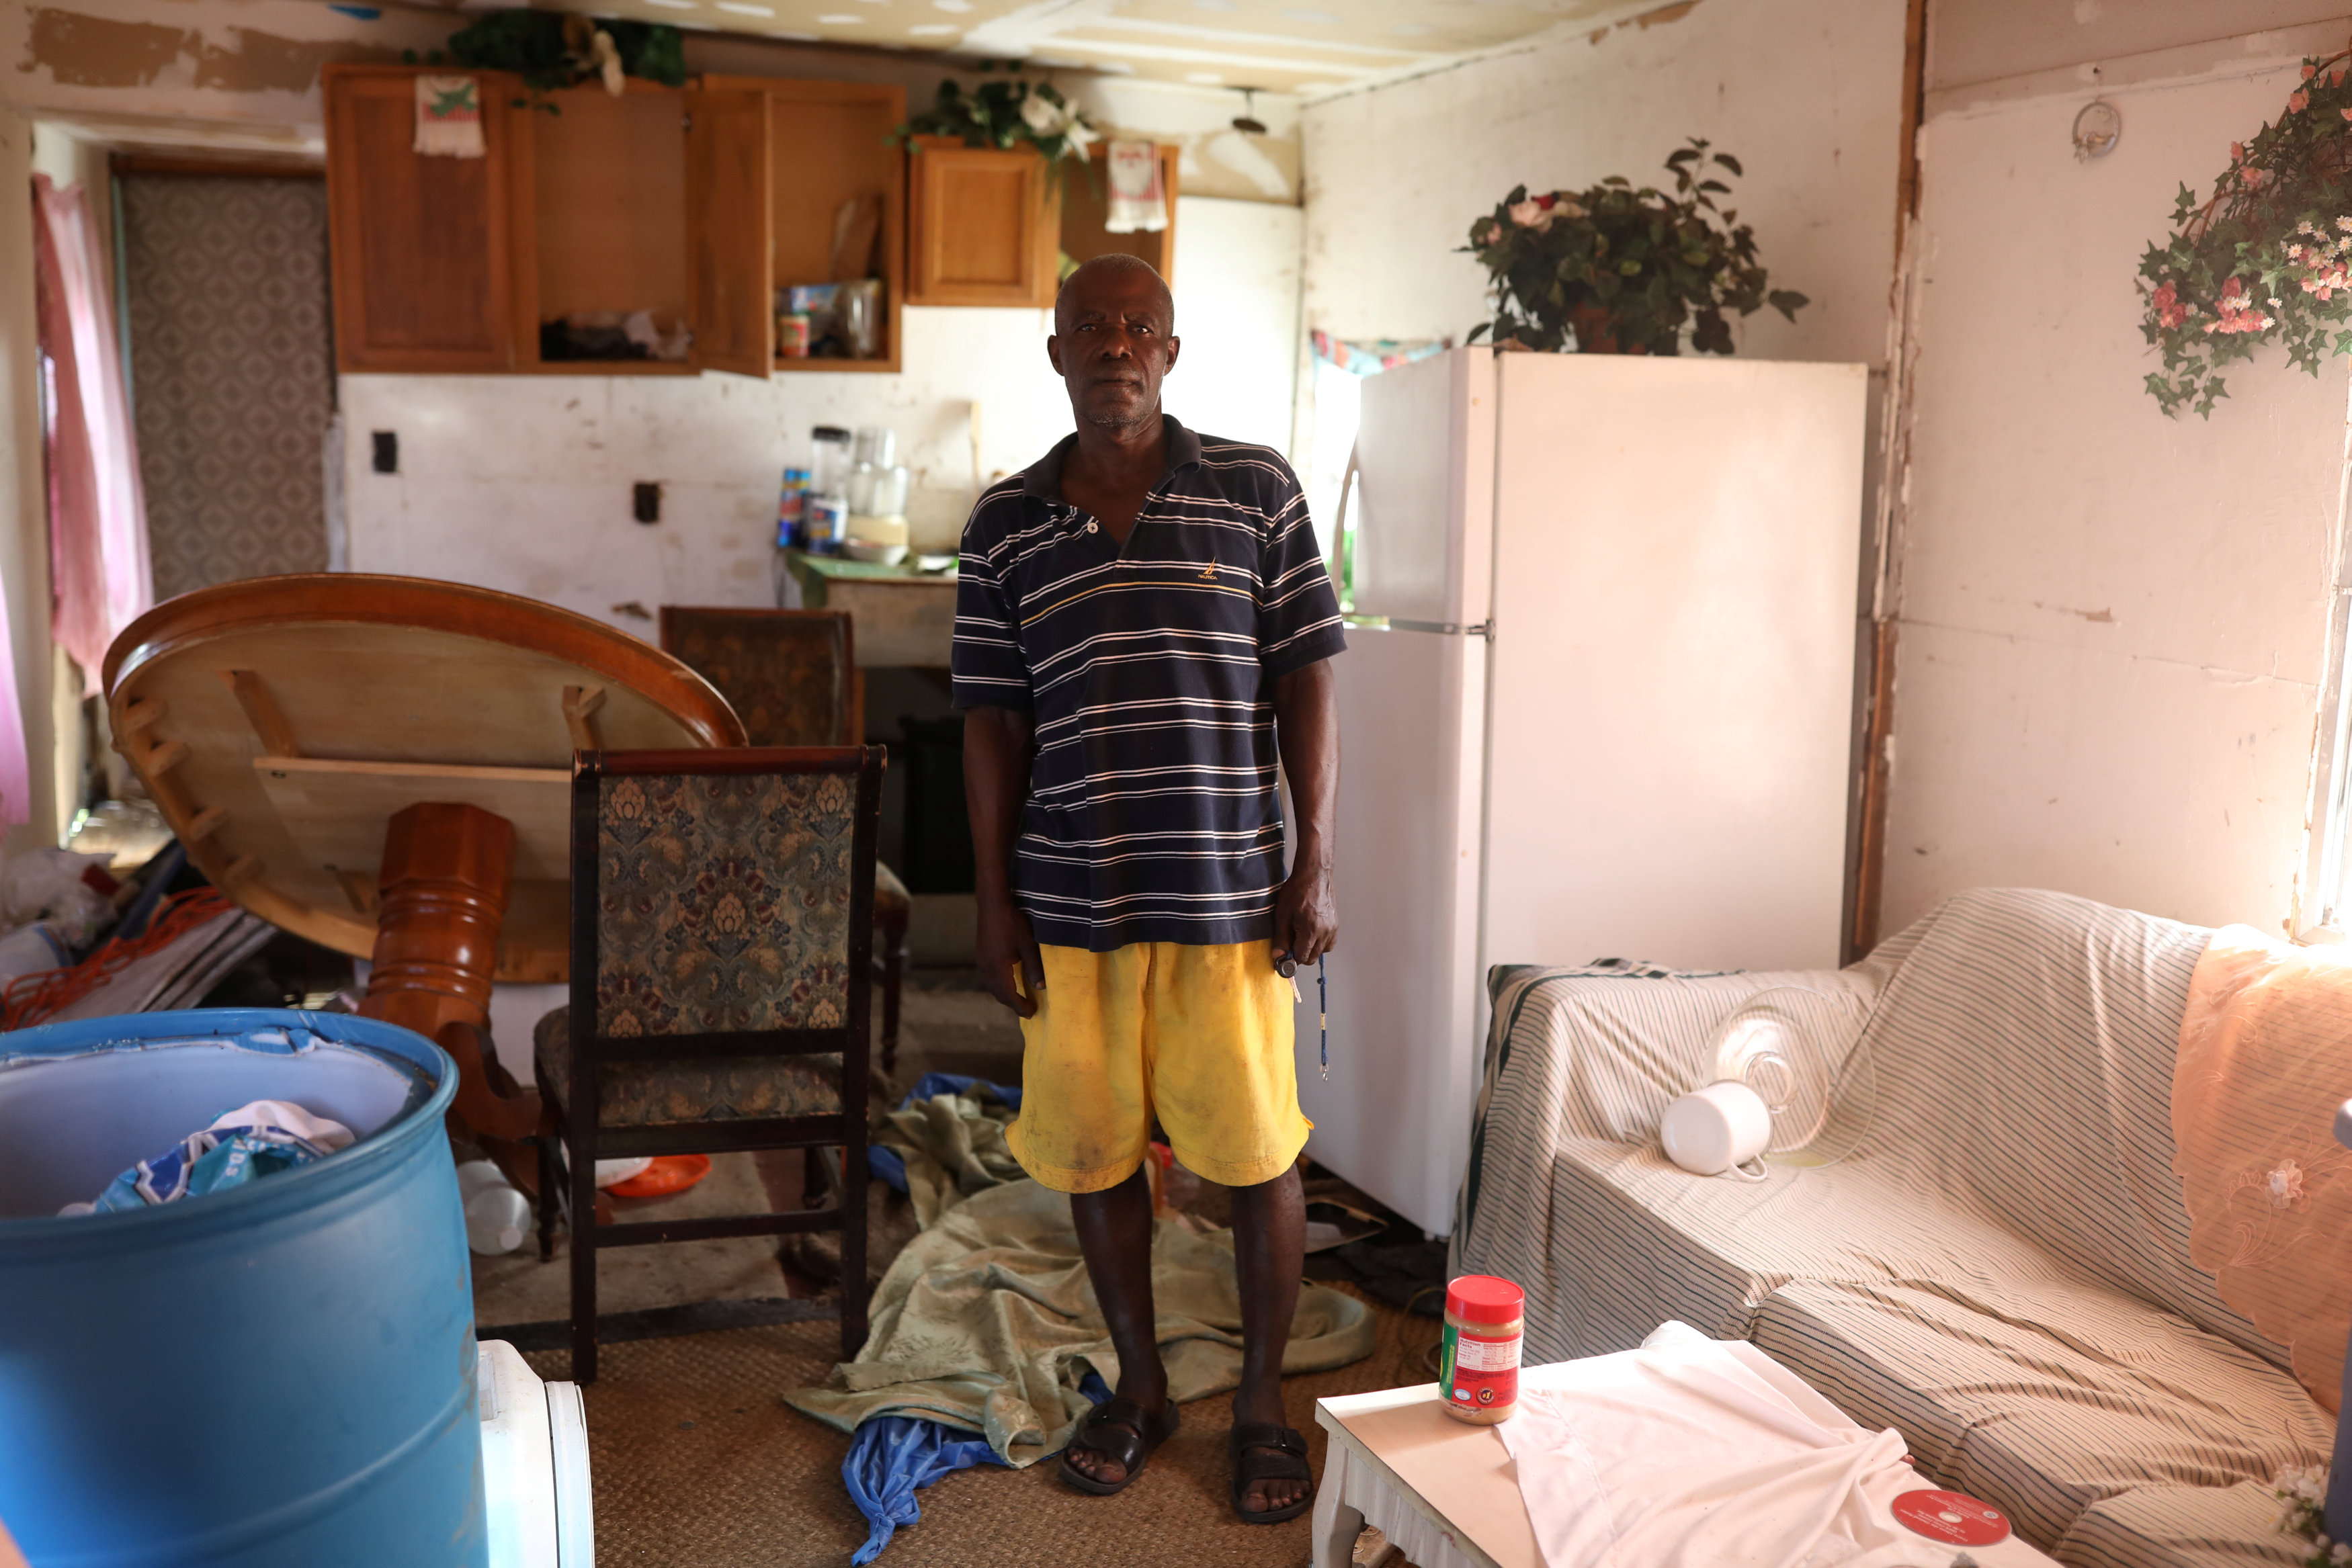 Renel Madere stands inside his mobile home, which was damaged by Hurricane Irma in Immokalee, Florida, U.S. September 12, 2017 (Reuters/Stephen Yang)